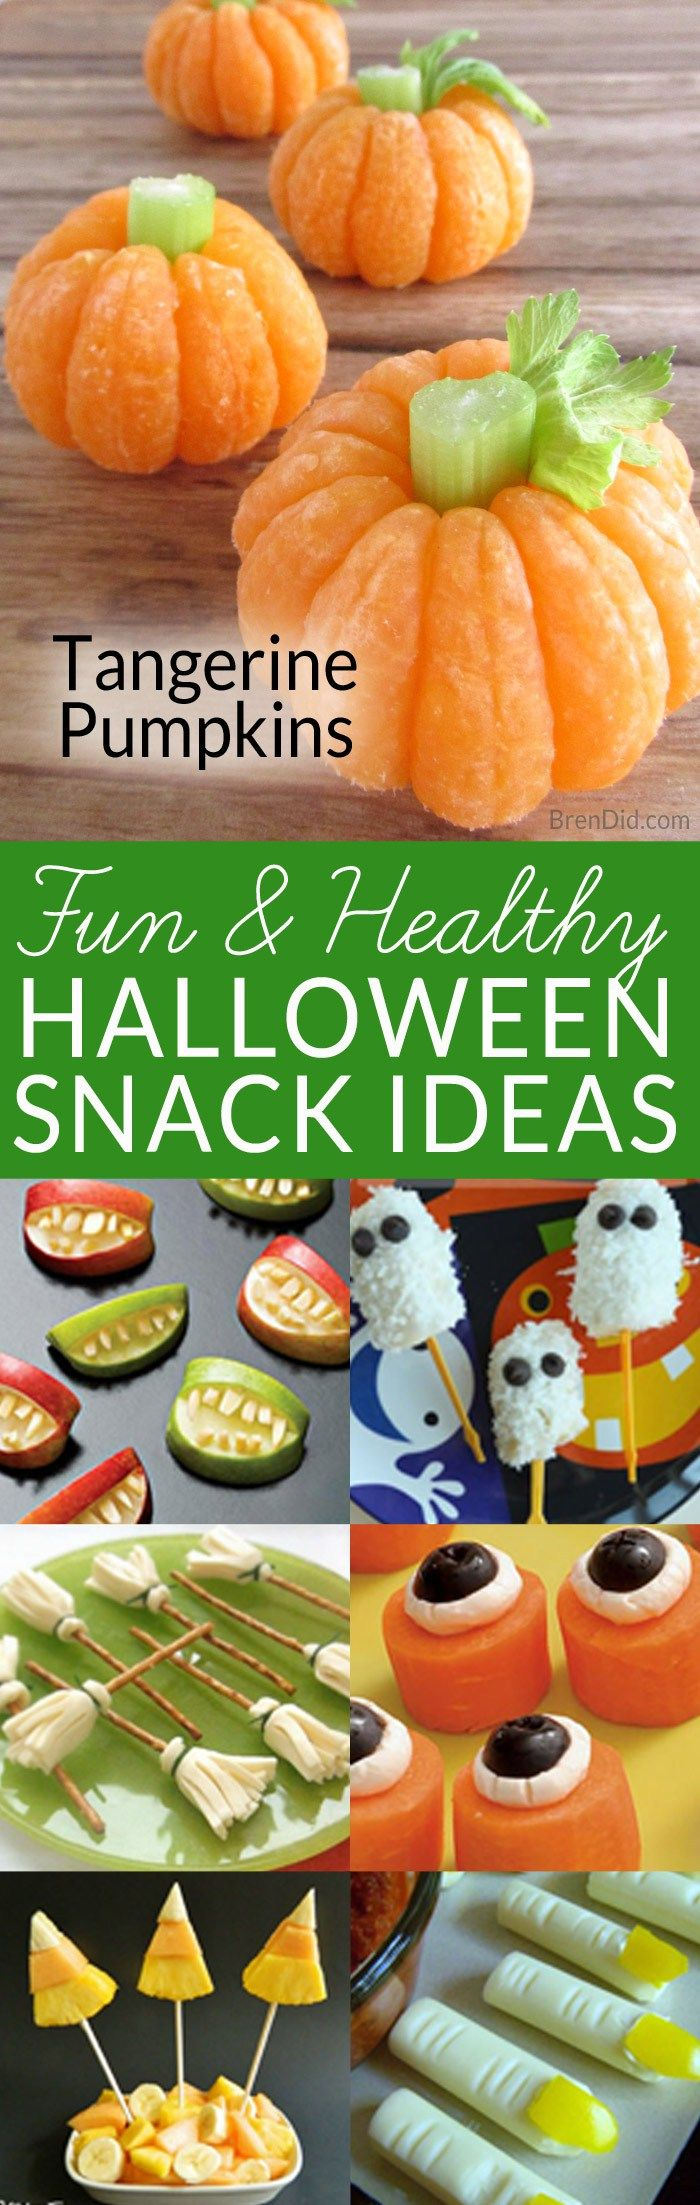 Check out Tangerine Pumpkins & 8 Other Healthy Halloween Snacks ...